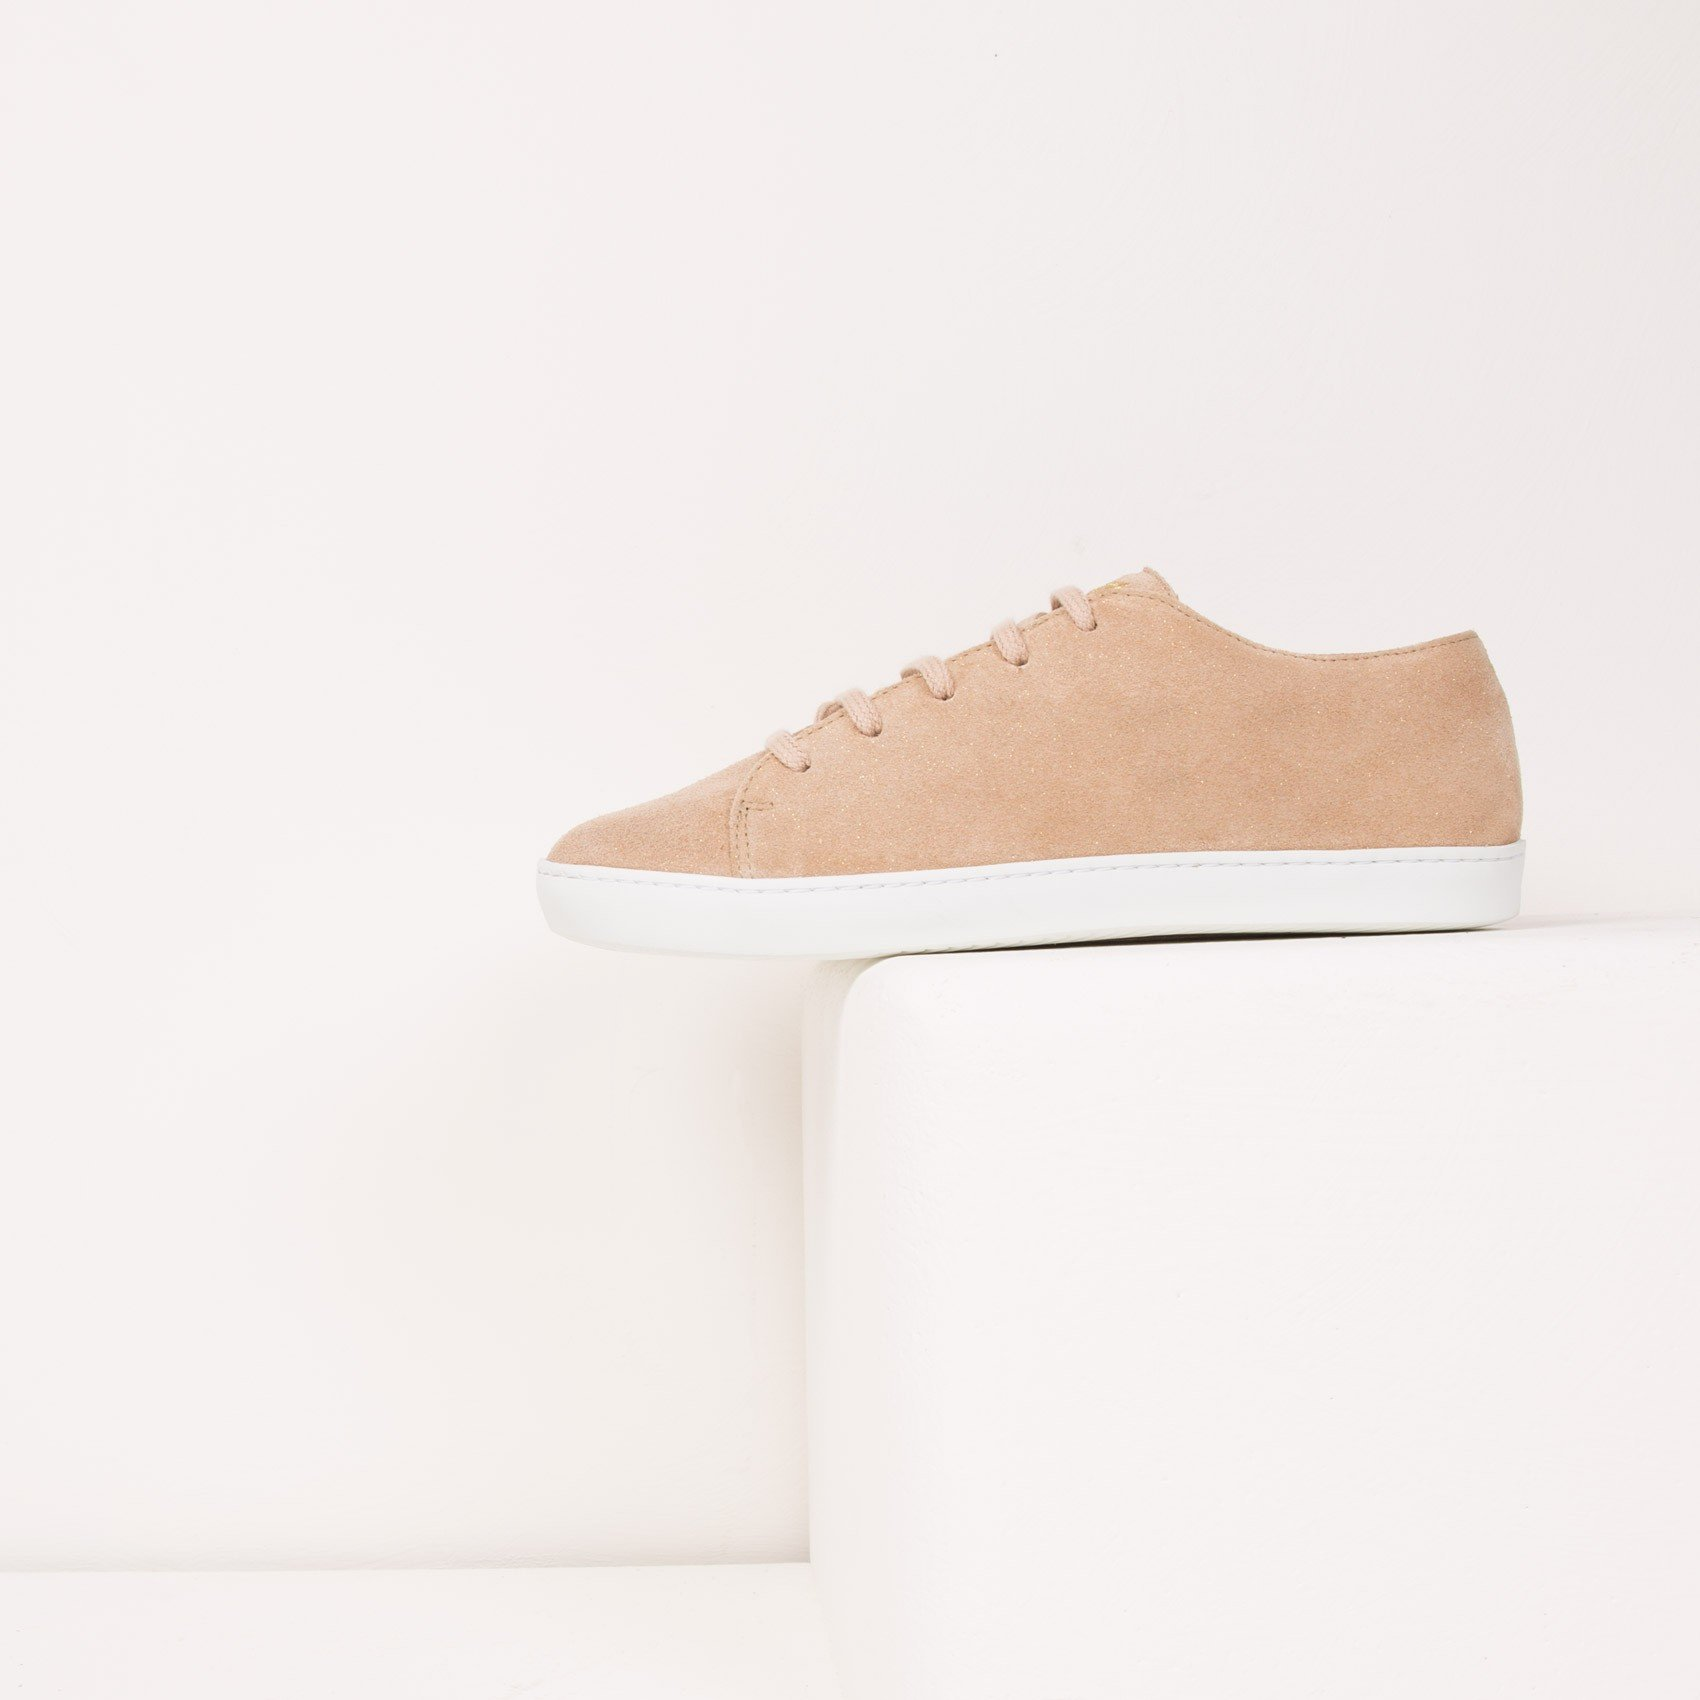 Bobbies Sneakers sable etoile la tete en l'air